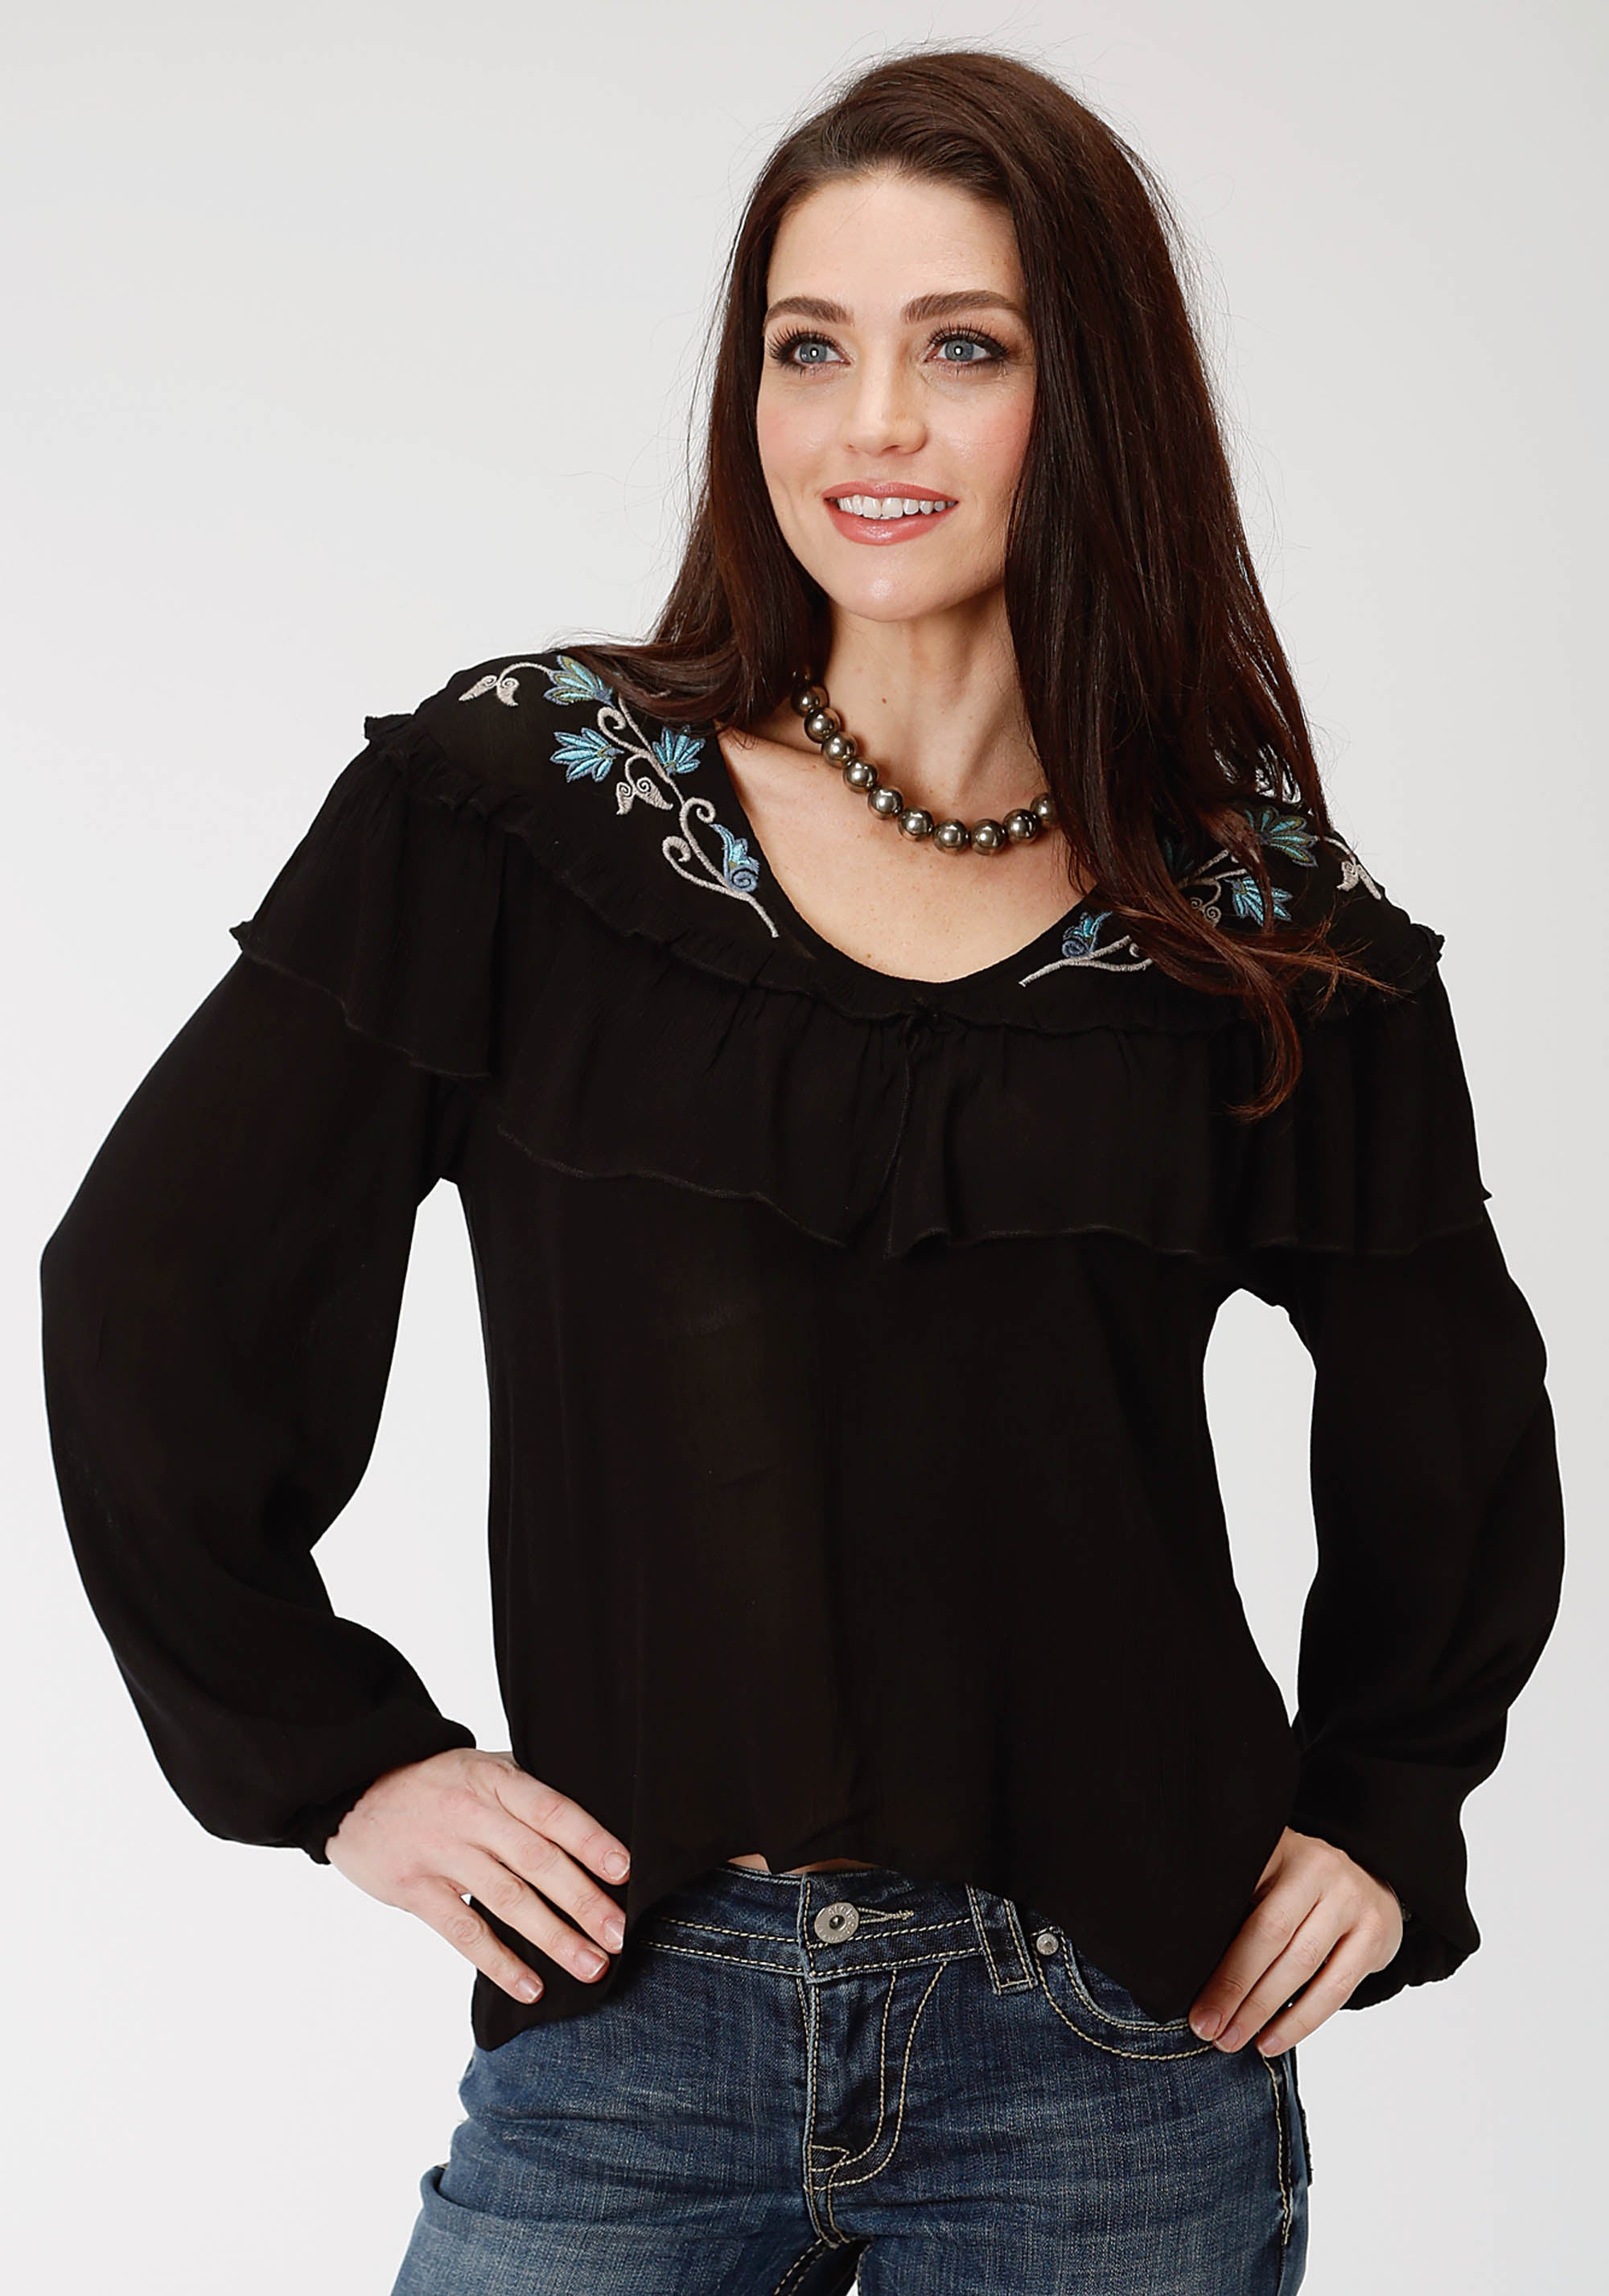 ROPER WOMENS BLACK 9573 RAYON CREPE V-NECK BLOUSE STUDIO WEST COLLECTION- AUTUMN MEADOW LONG SLEEVE